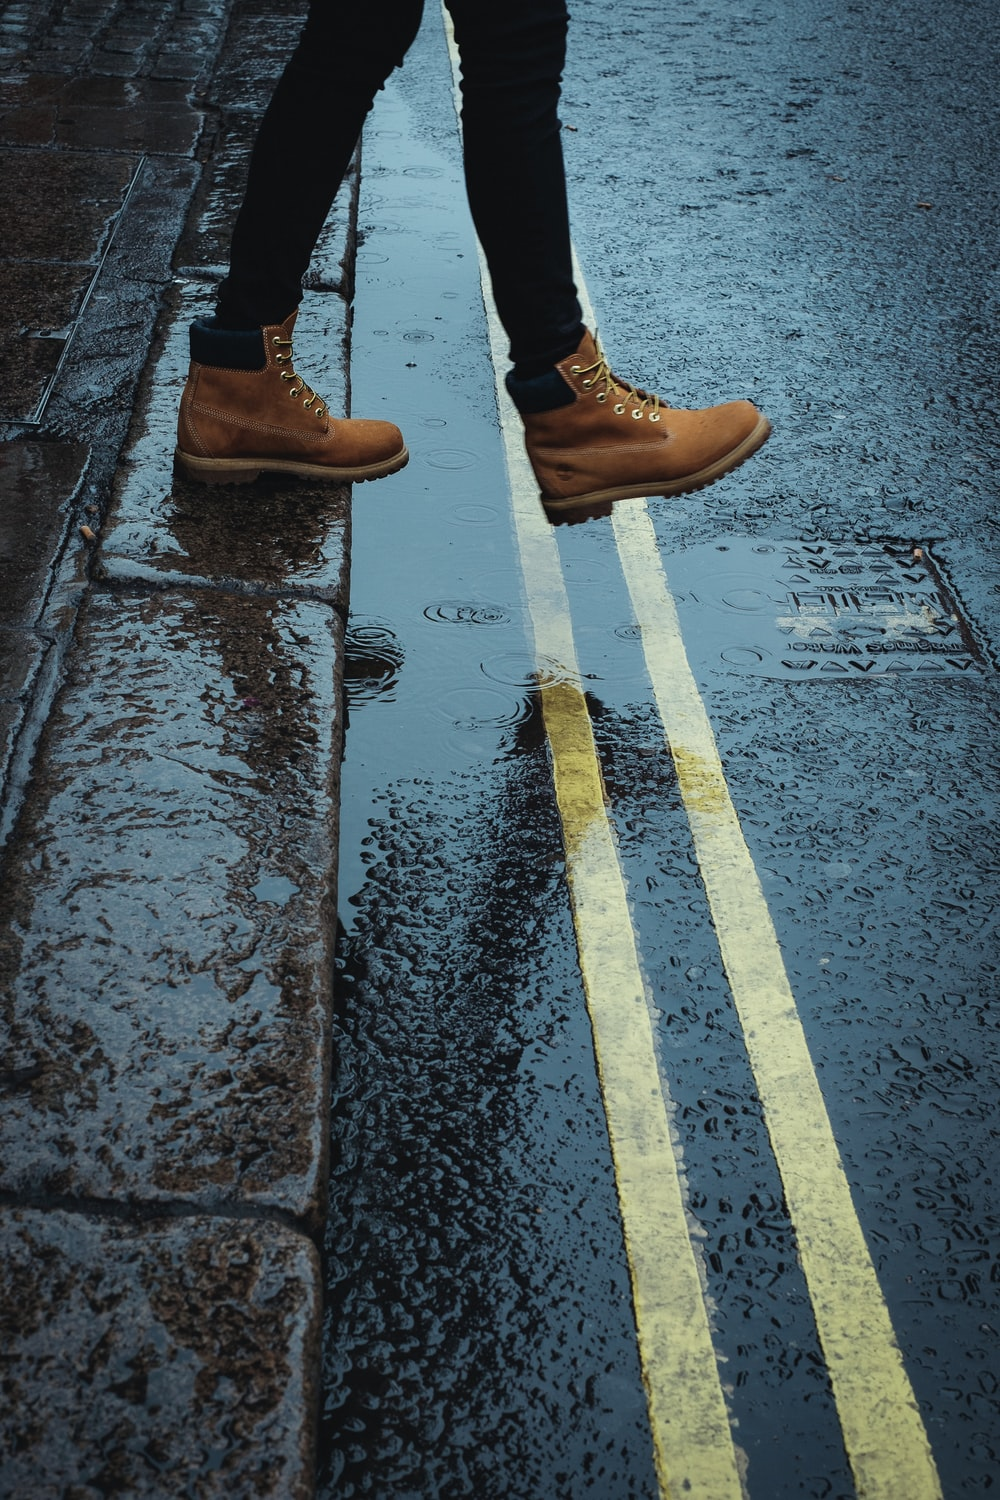 person wearing brown boots walking on a wet road